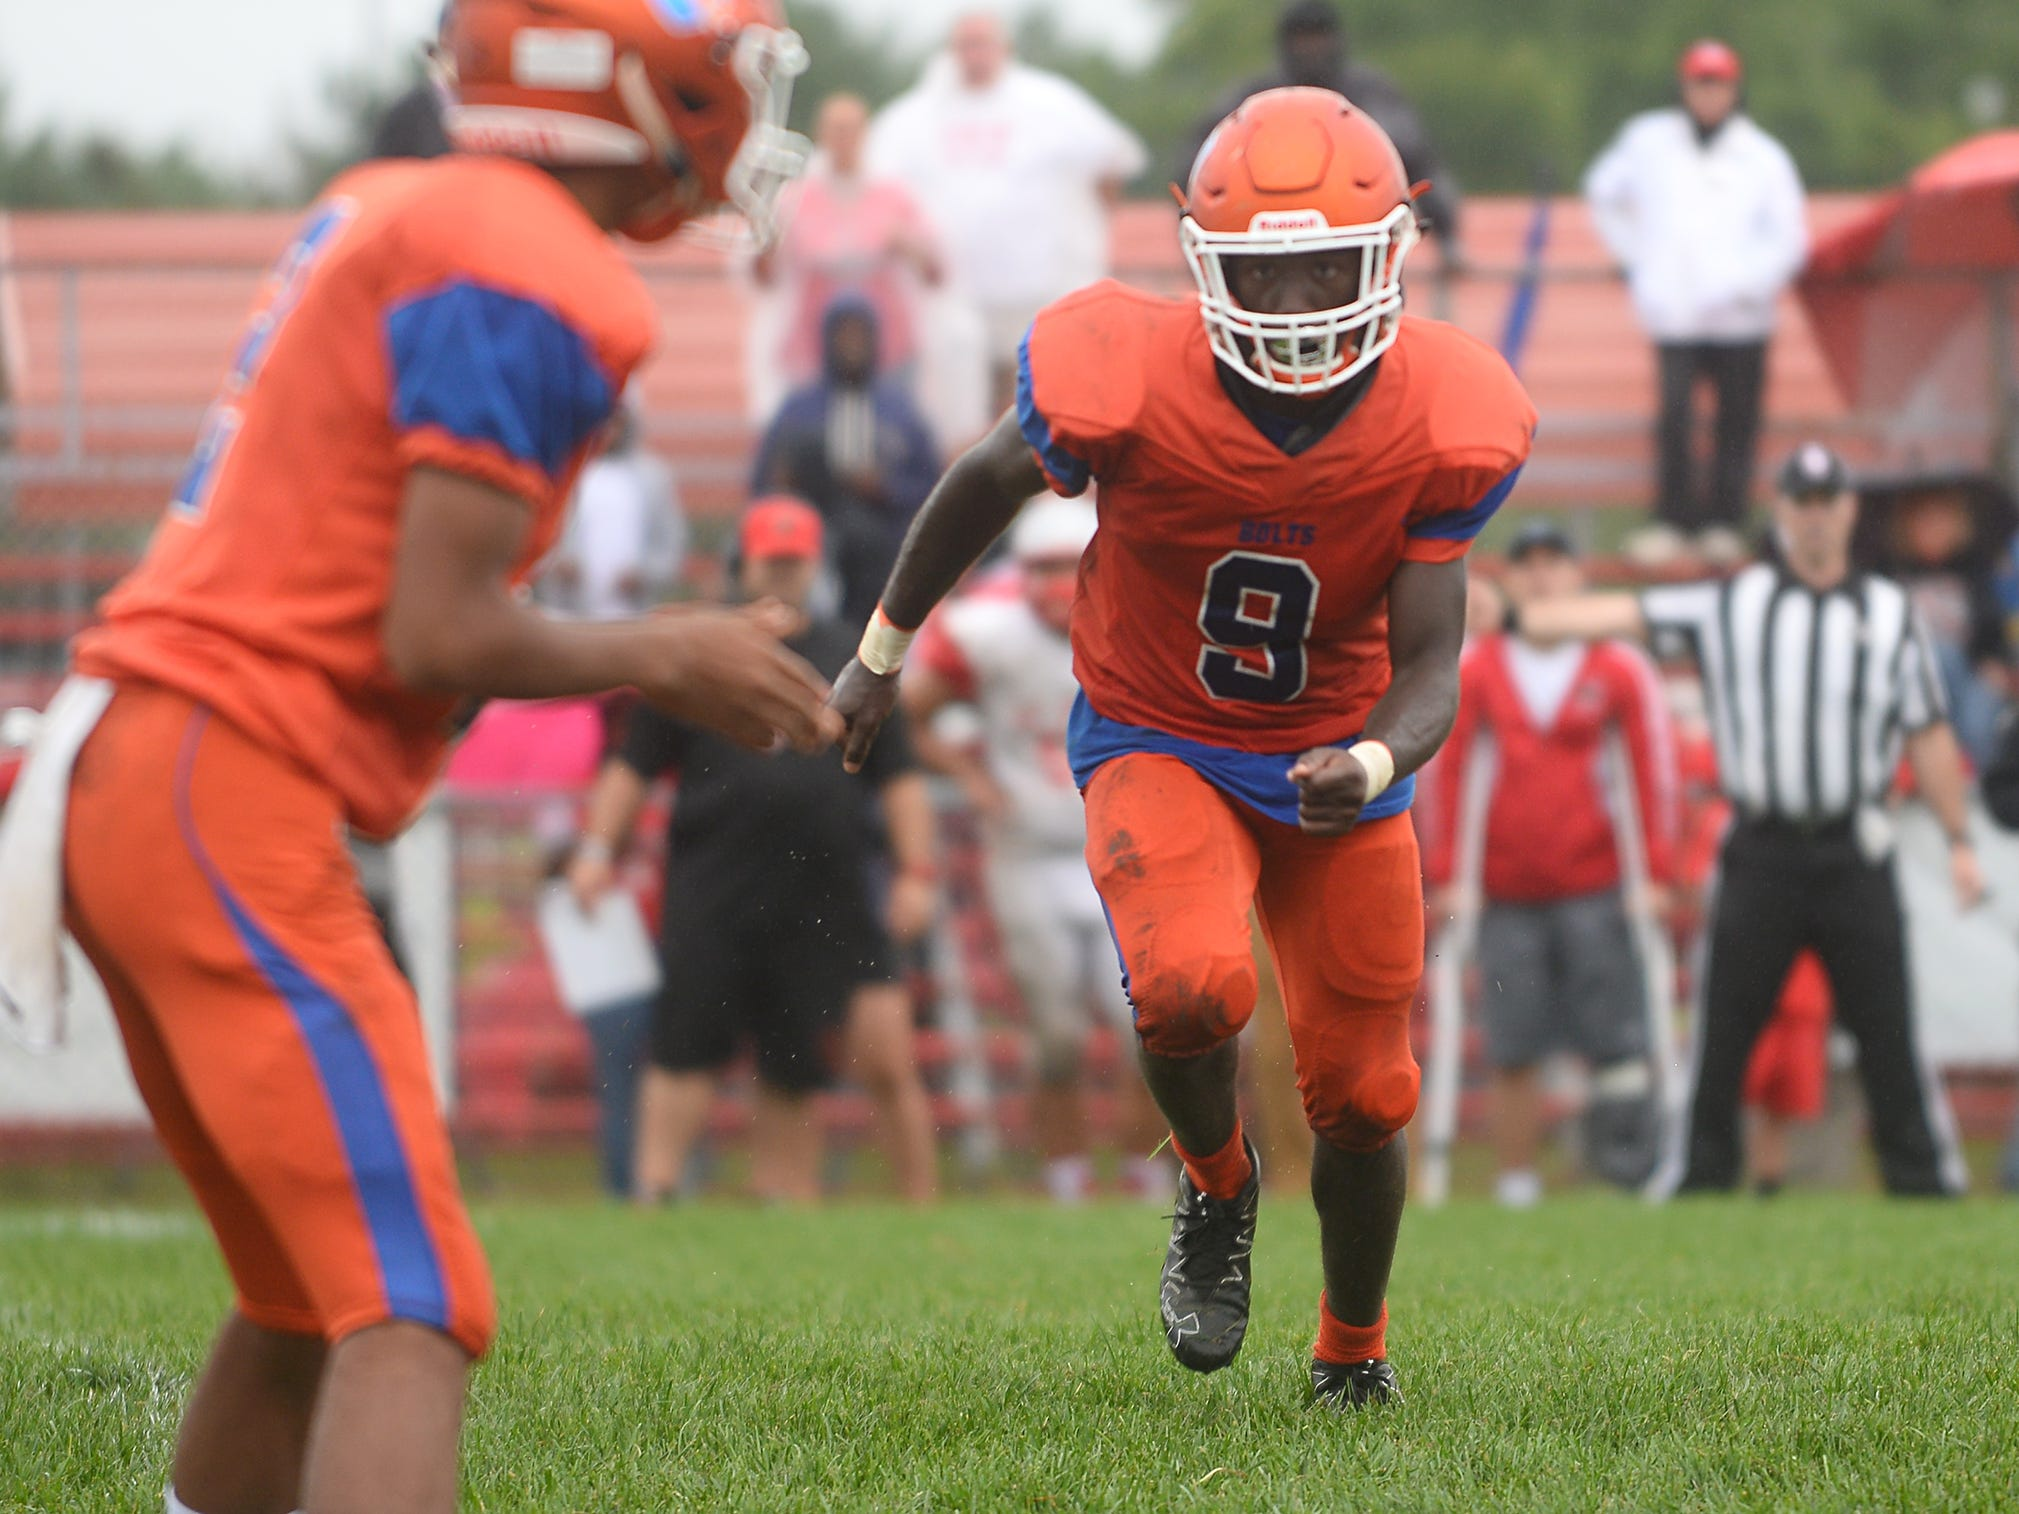 Millville WR, Kyle Yancey (9) lines up during a play against St. Joseph. The visiting Thunderbolts lost the outing to the Wildcats in Hammonton on Saturday, September 8.